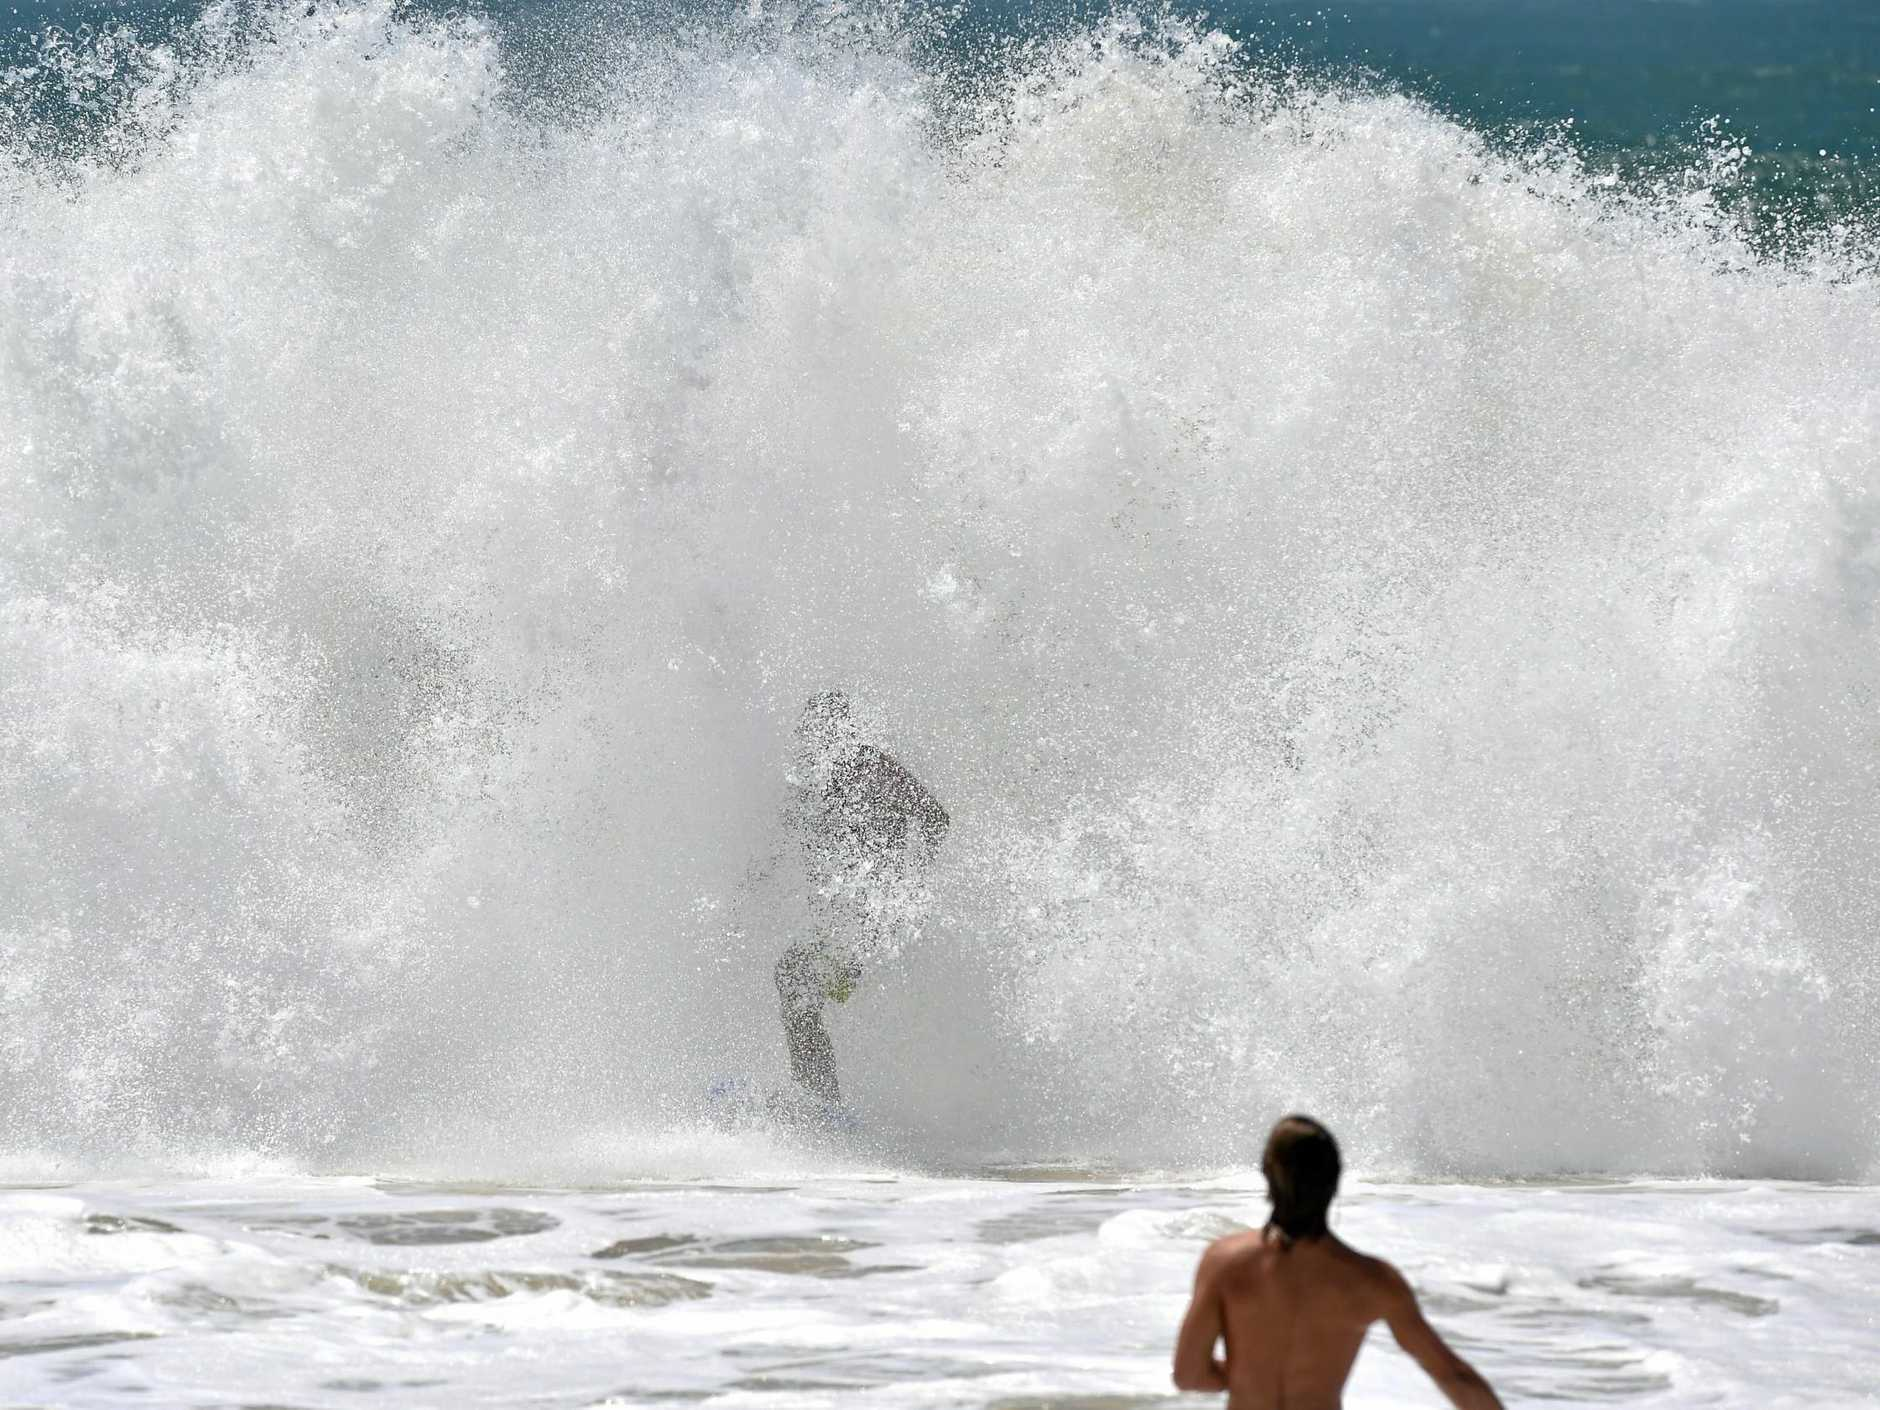 Huge waves pound Sunshine Coast Beaches as a result of Cyclone Winston. Big waves hit Mooloolaba. Photo: Che Chapman / Sunshine Coast Daily